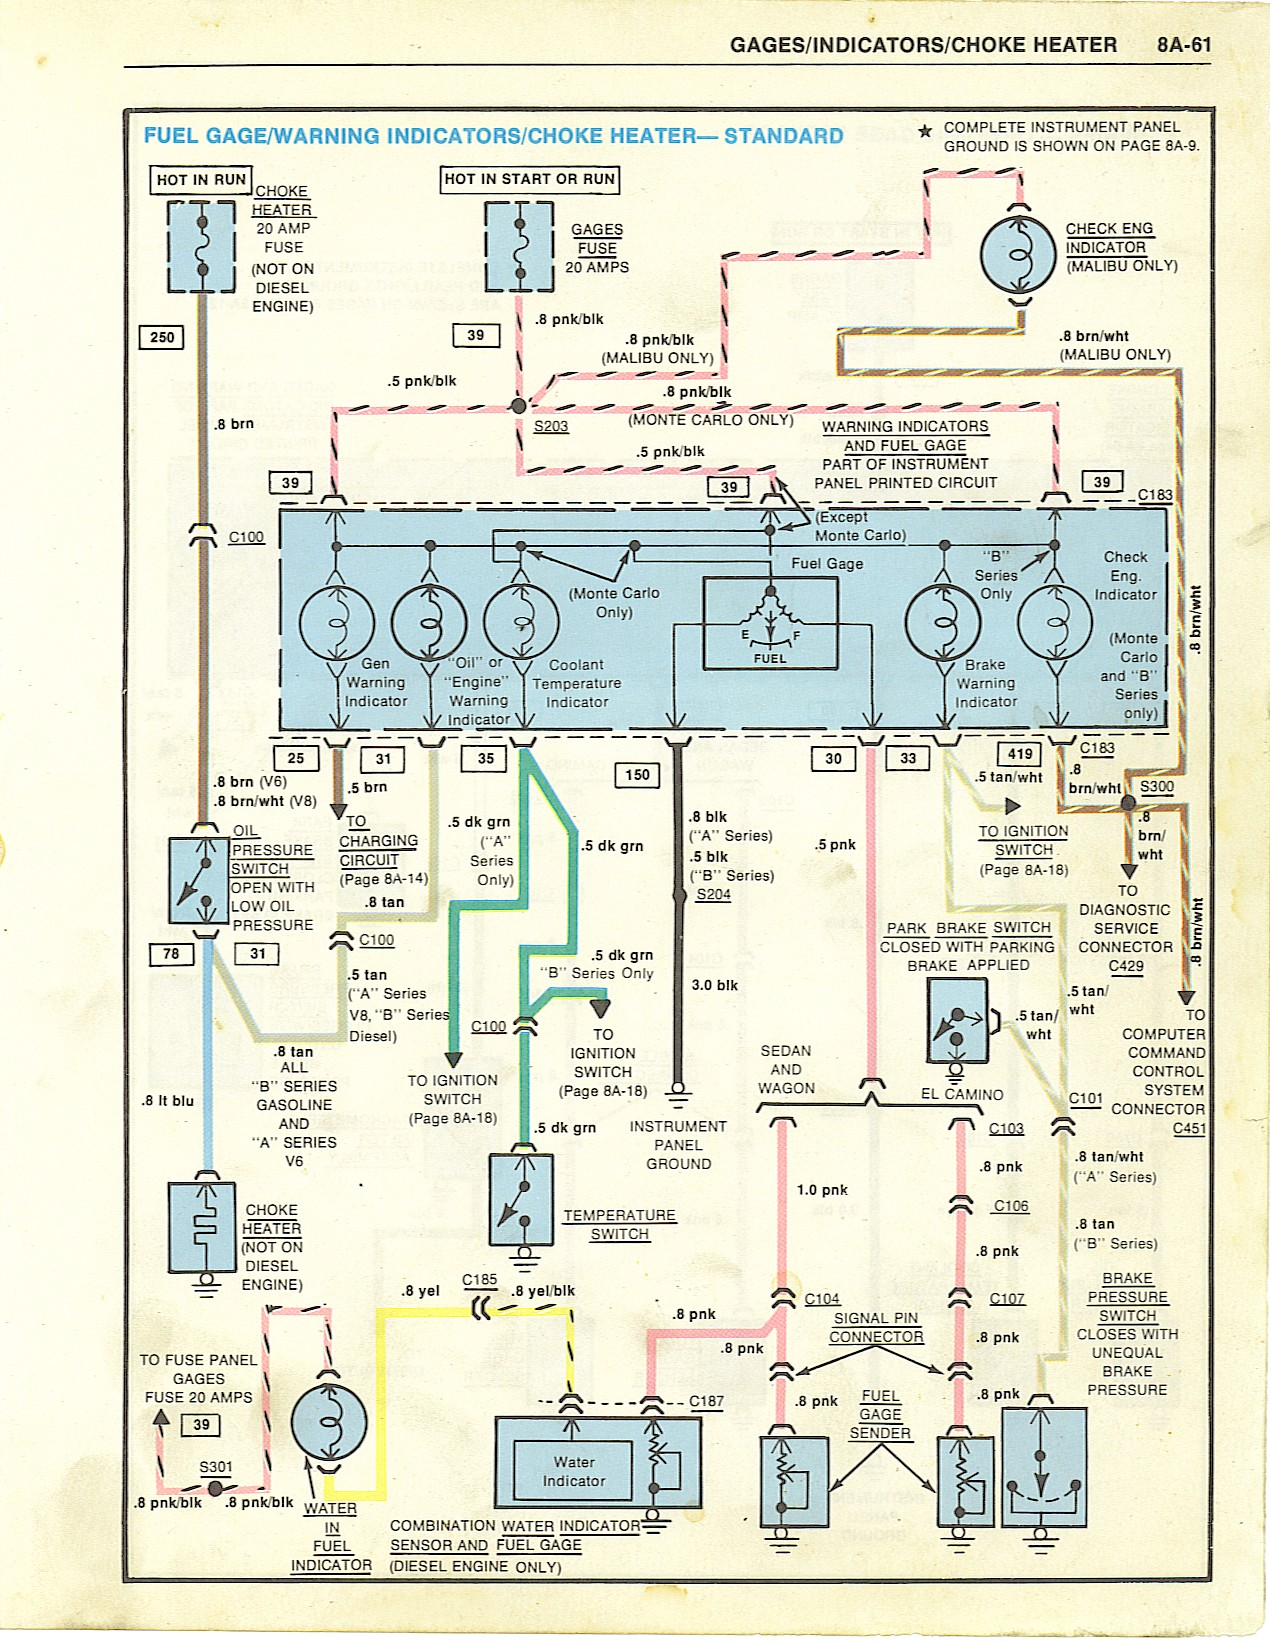 FuelGage WarningIndicators wiring diagrams GMC Engine Wiring Harness Diagram at edmiracle.co